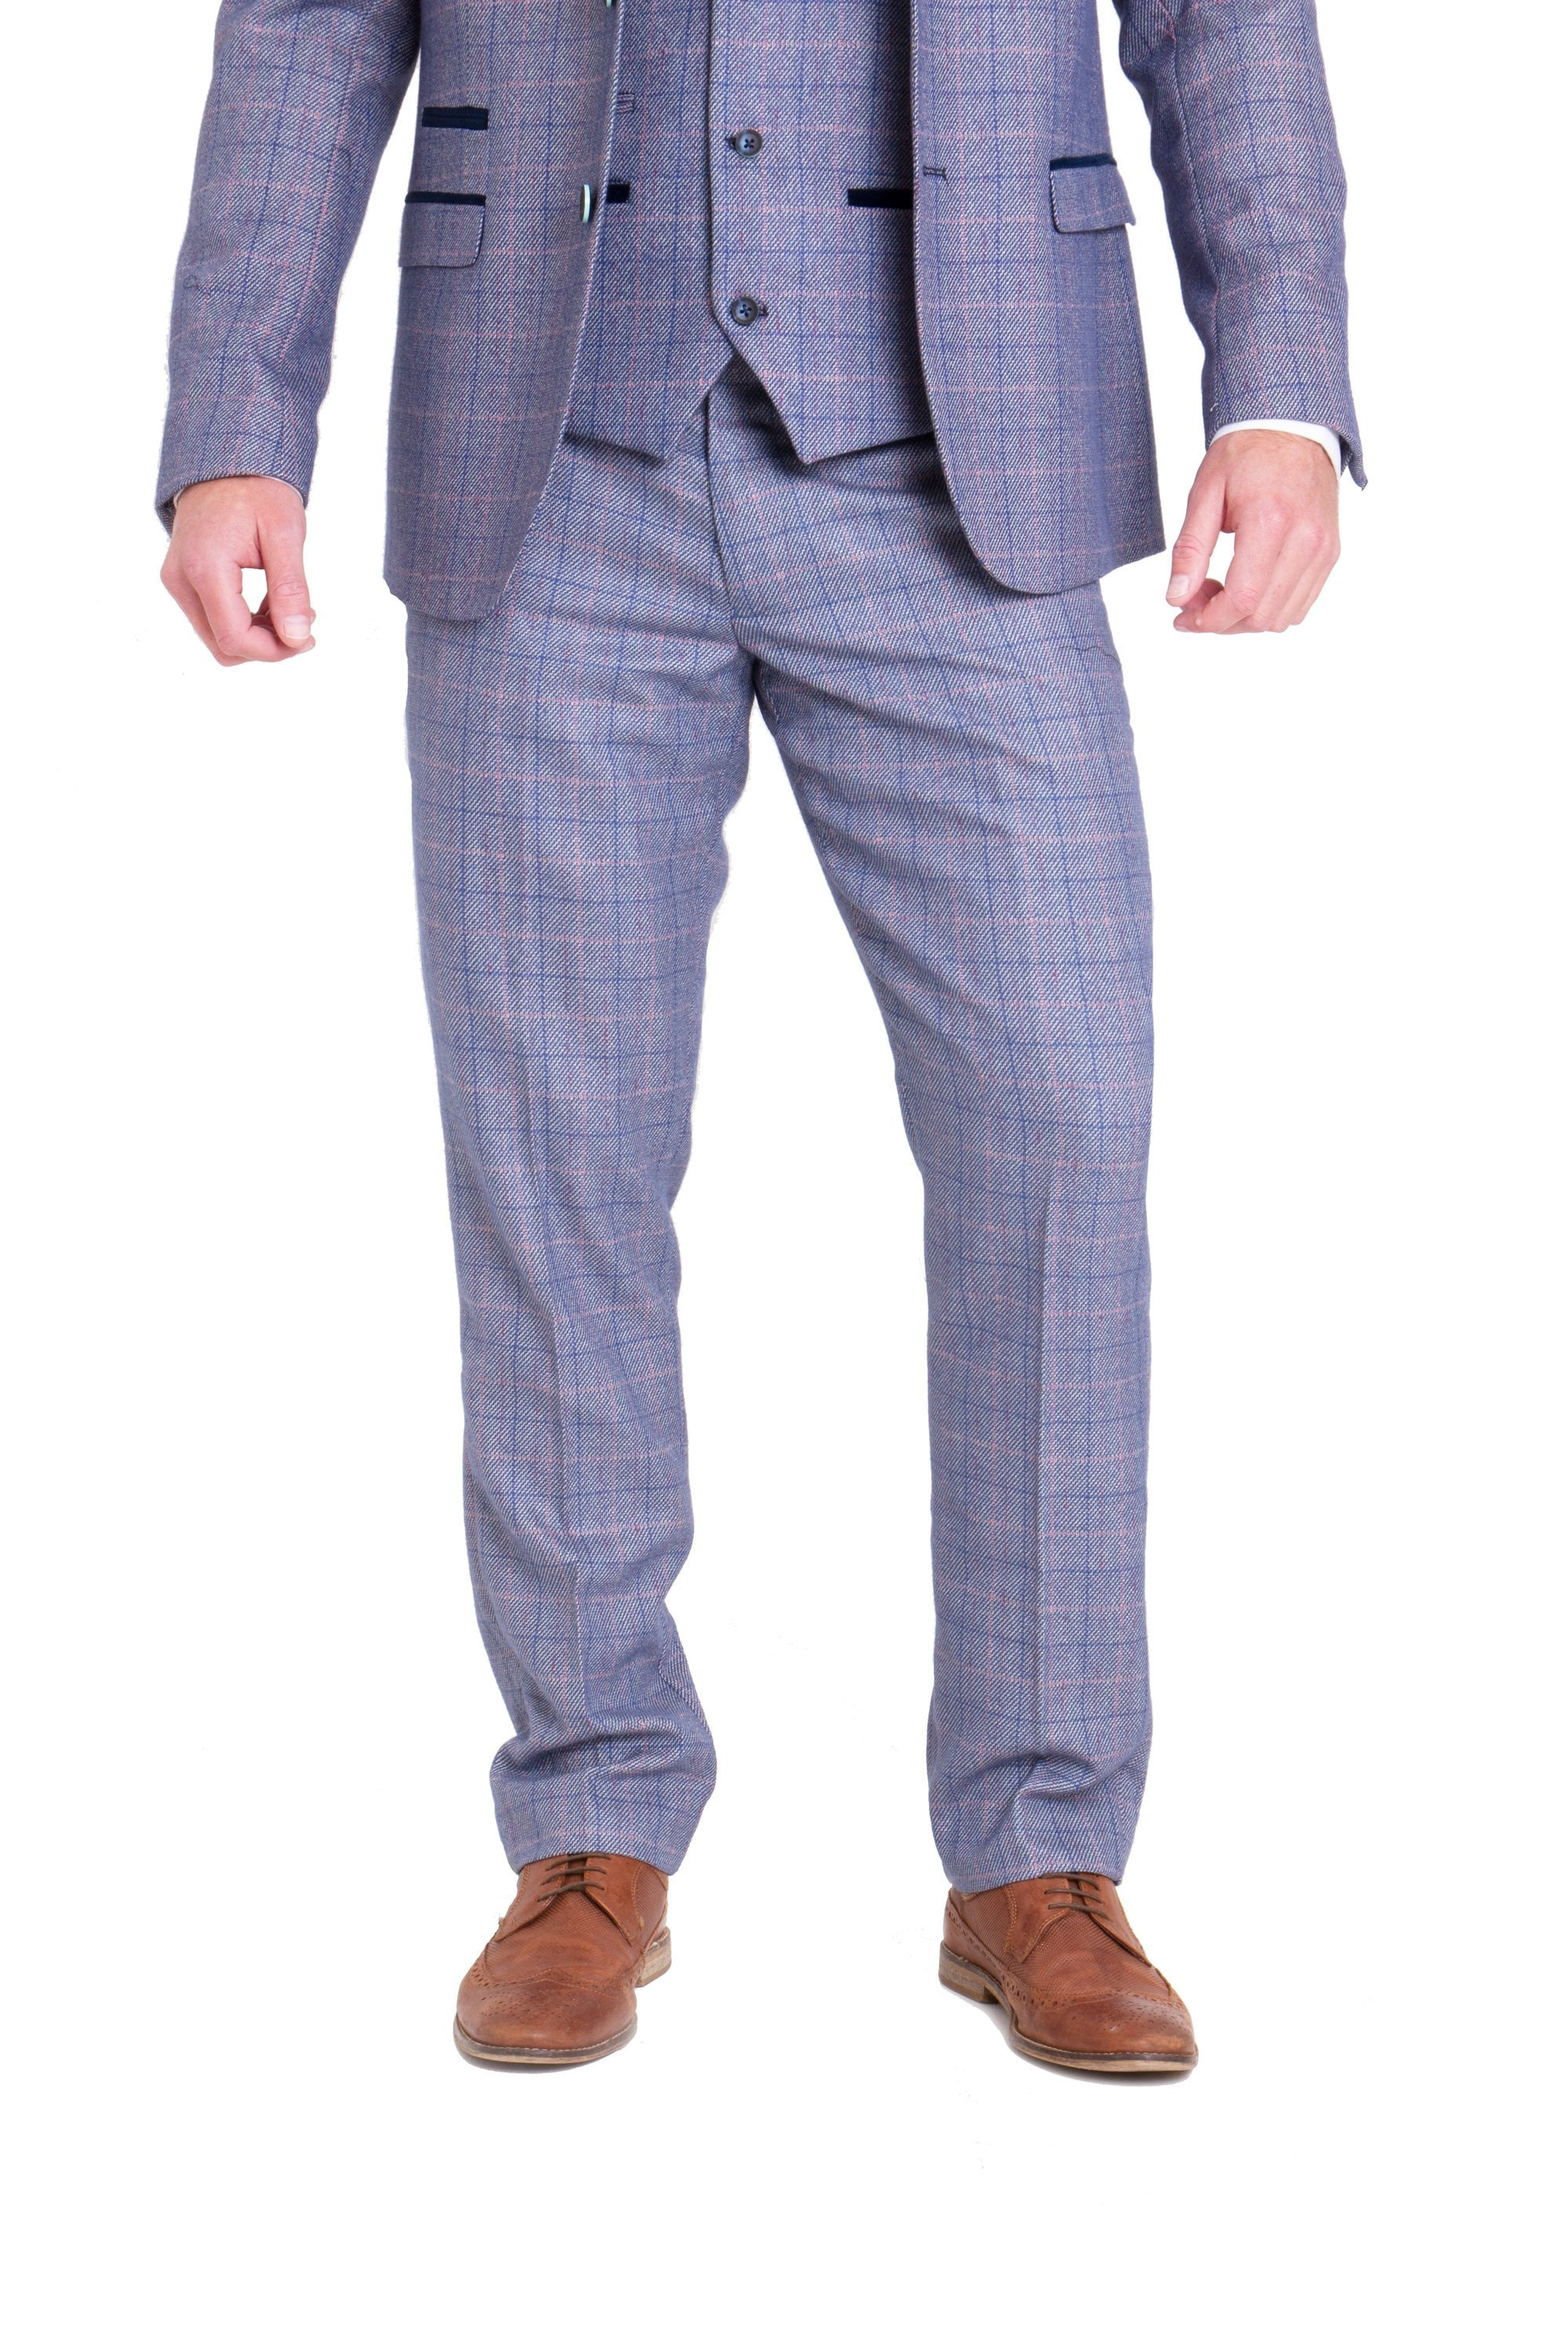 Marc Darcy Harry Blue Tweed Trousers 5223612472a6